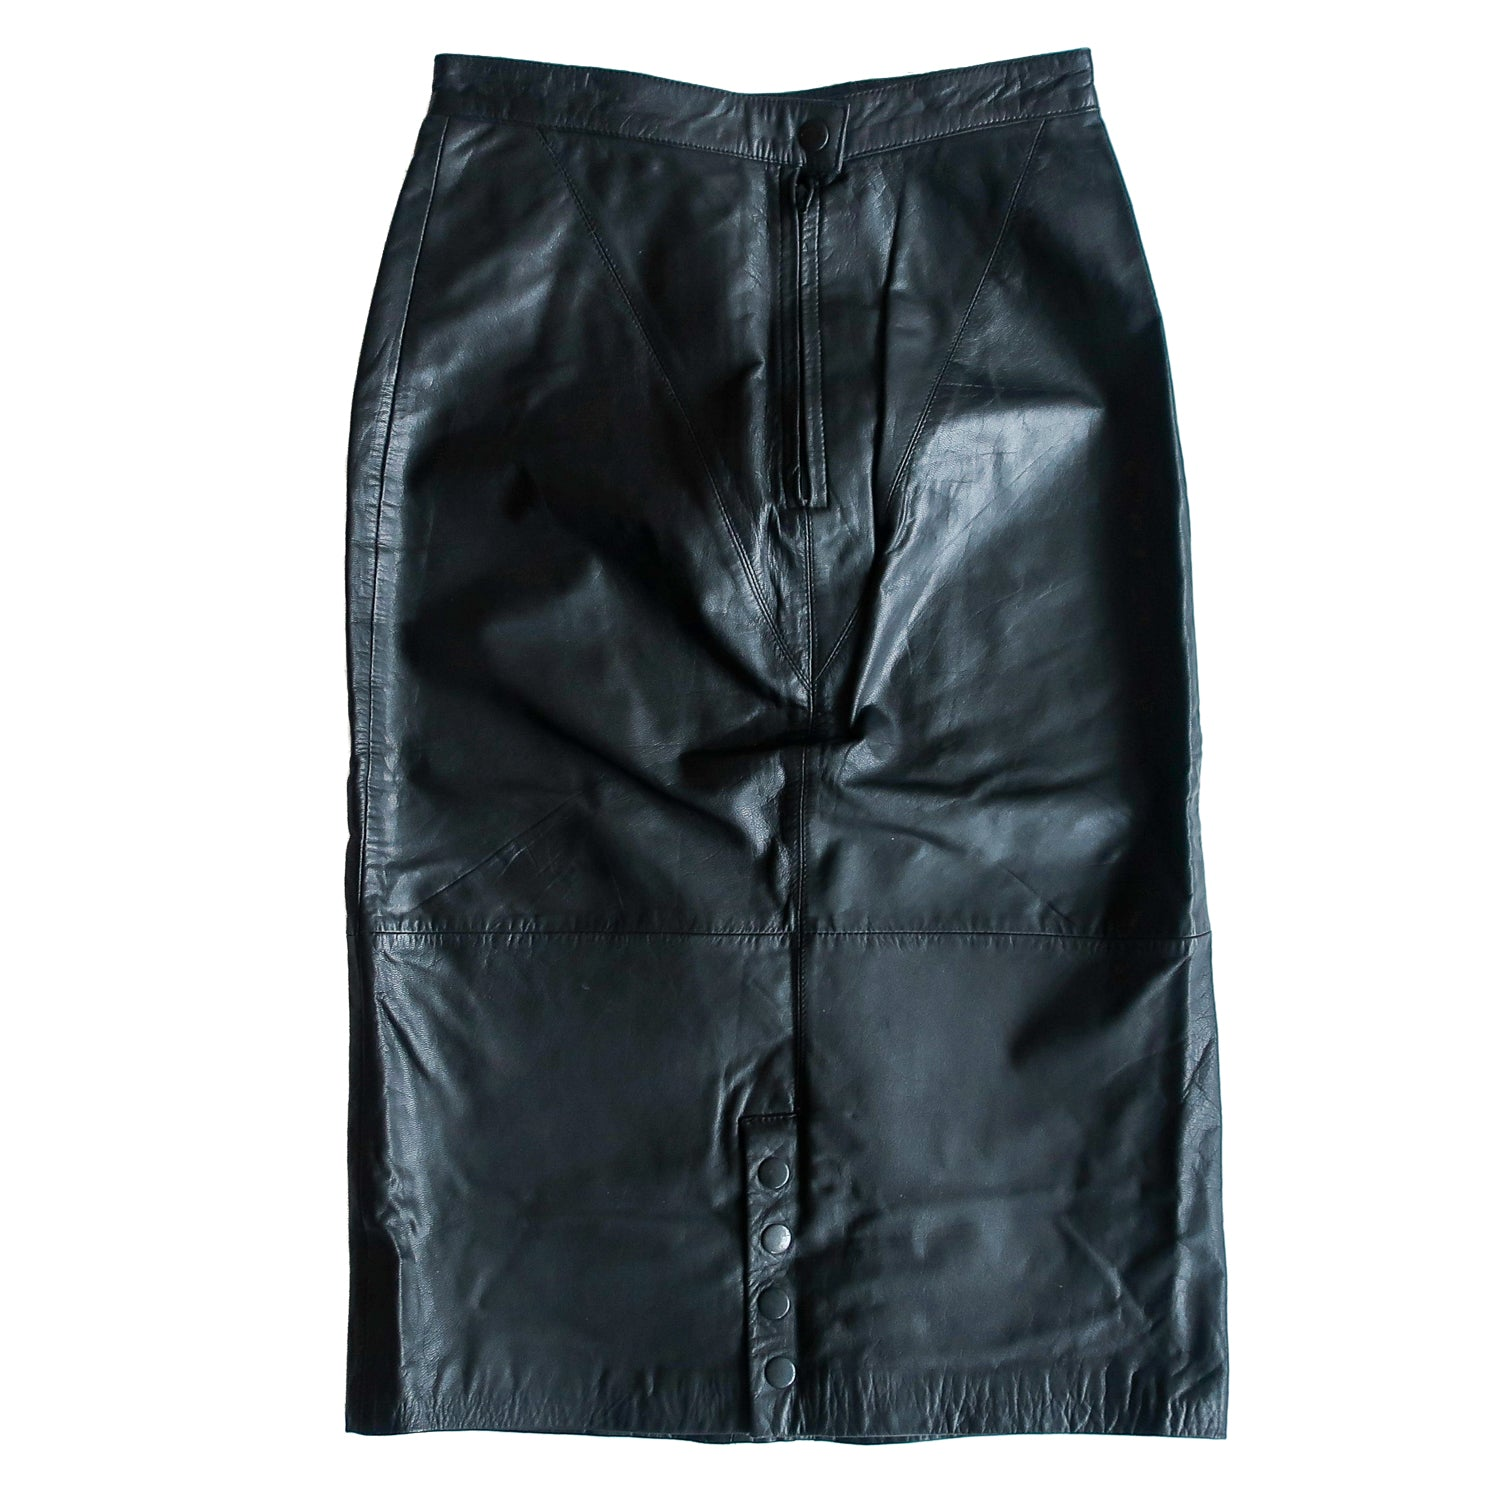 Second Room Shop Vintage. Shop vintage, shop sustainable. Vintage high waisted black leather midi skirt, with dart seam details, zipper and snap closure at back. Fully lined, with 4 snaps at the back slit that can be opened, or kept closed.